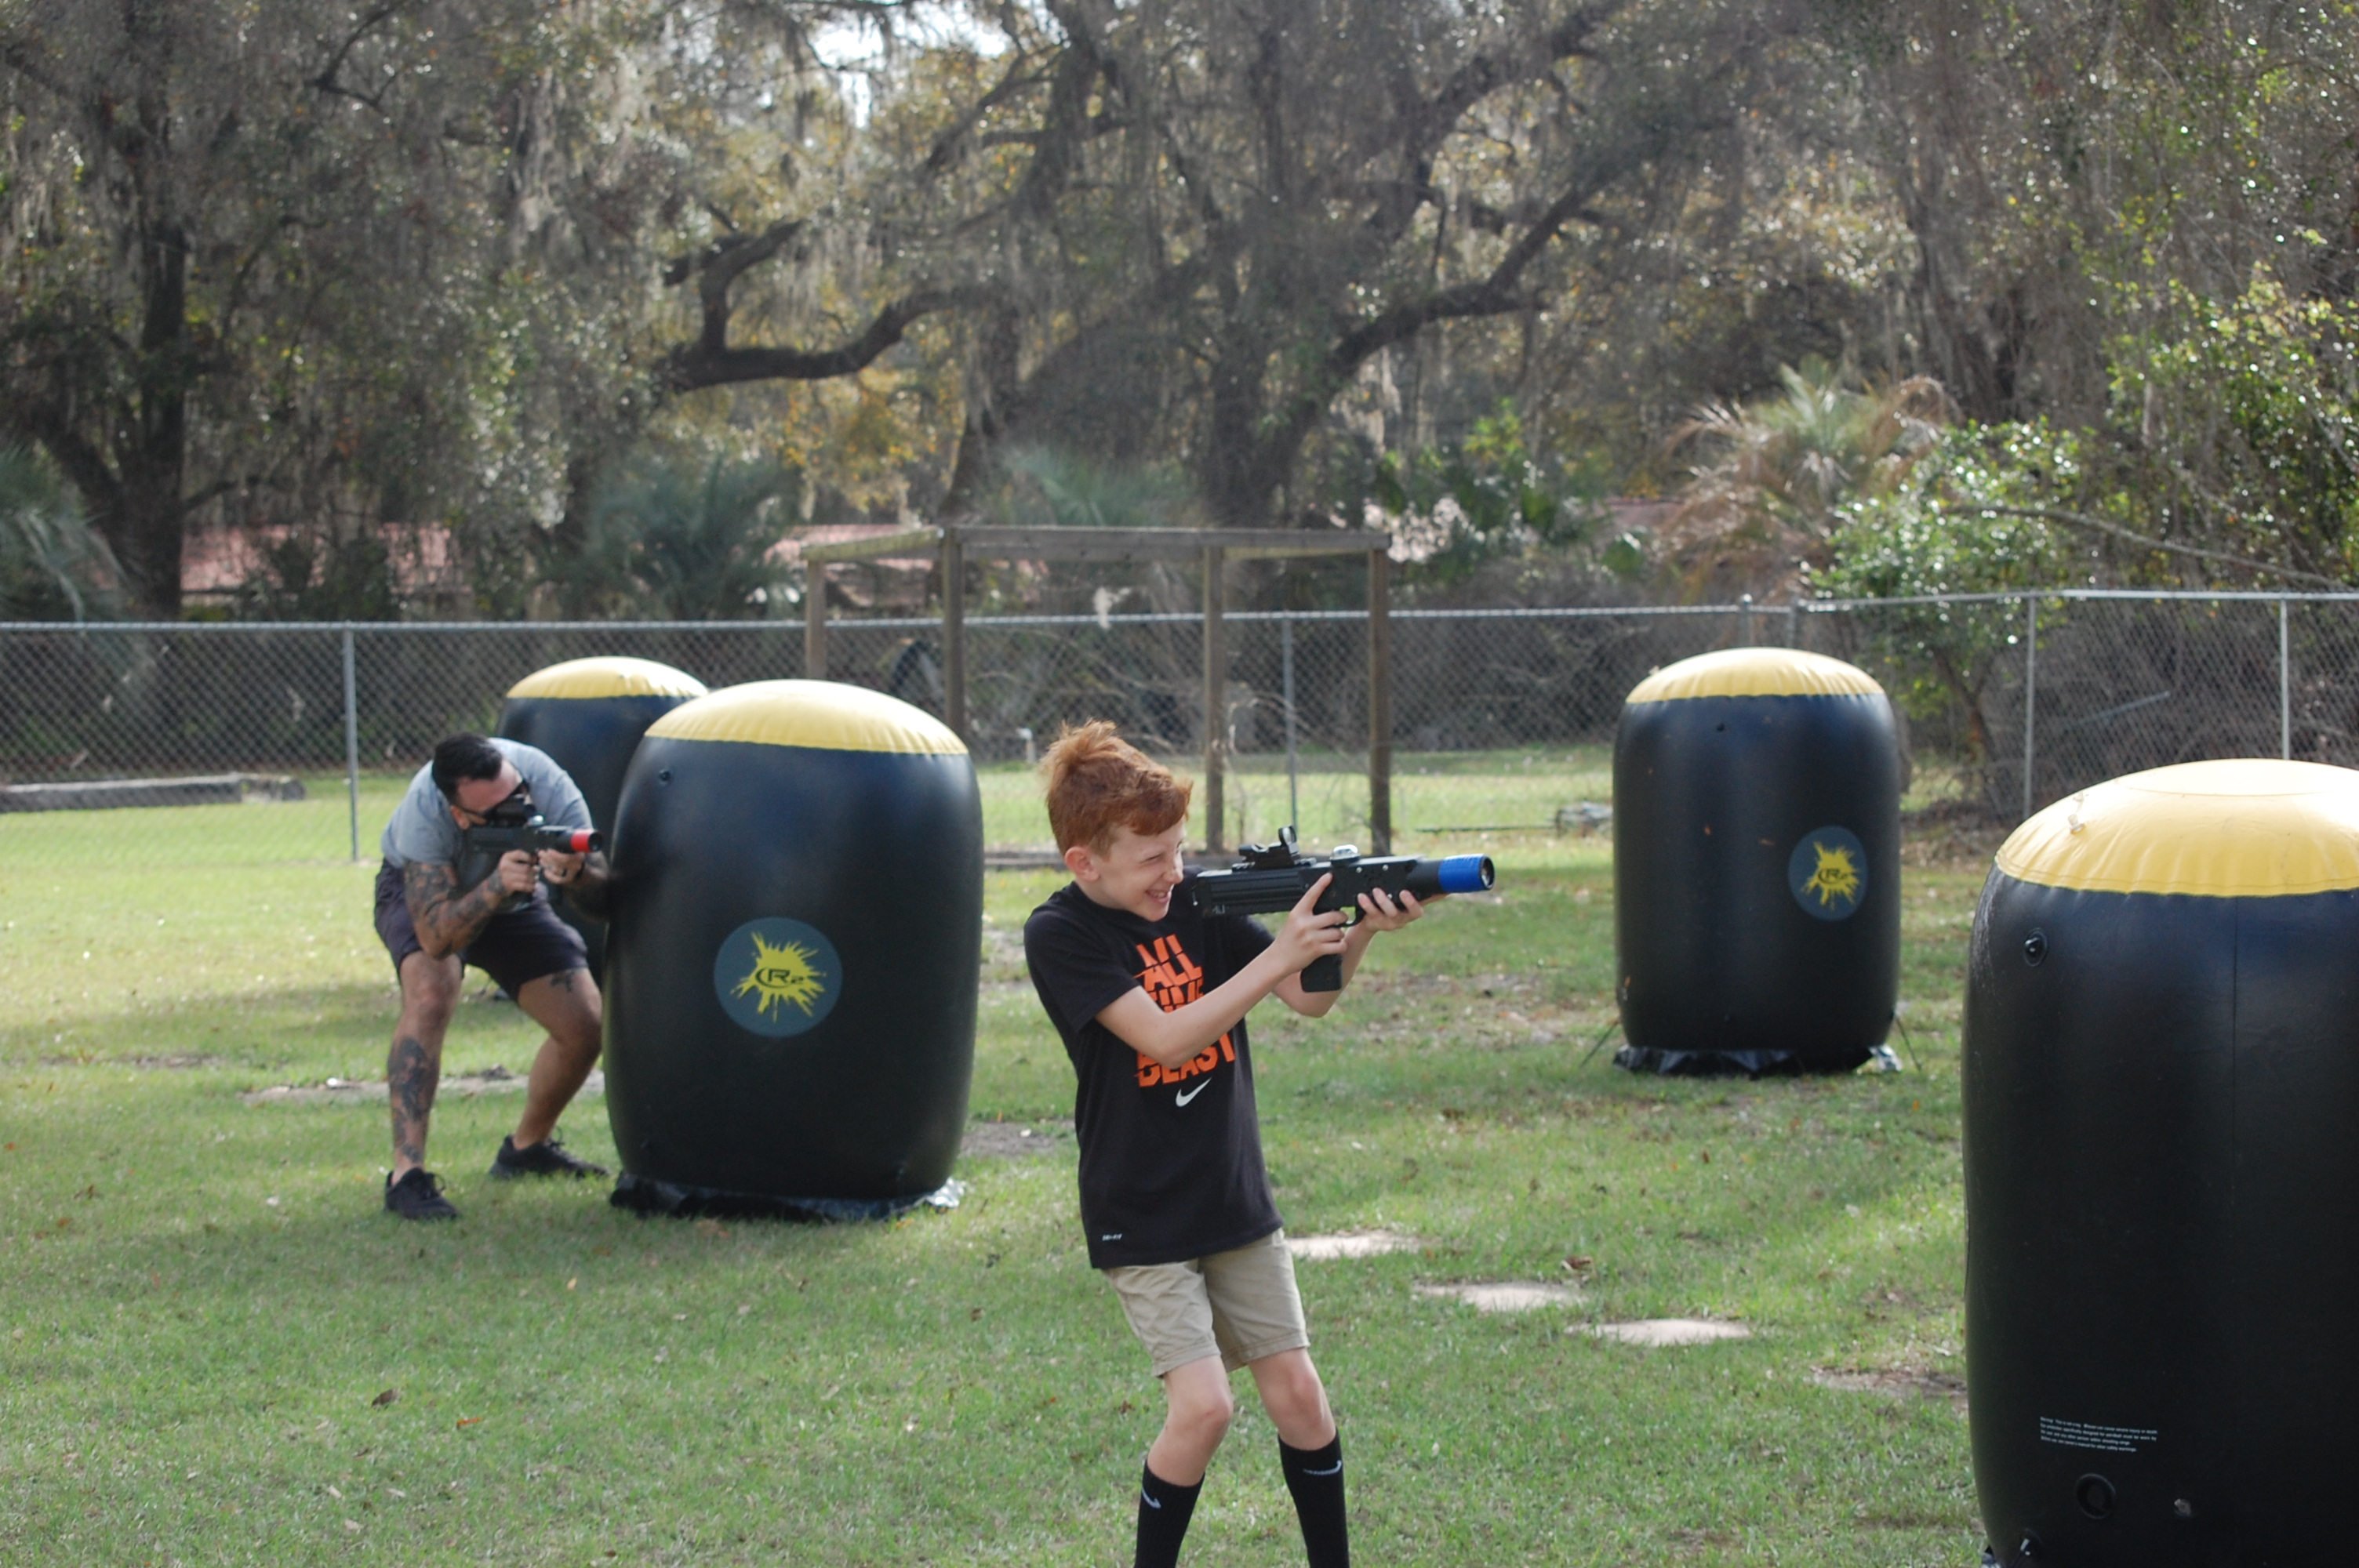 Laser Tag in Clearwater